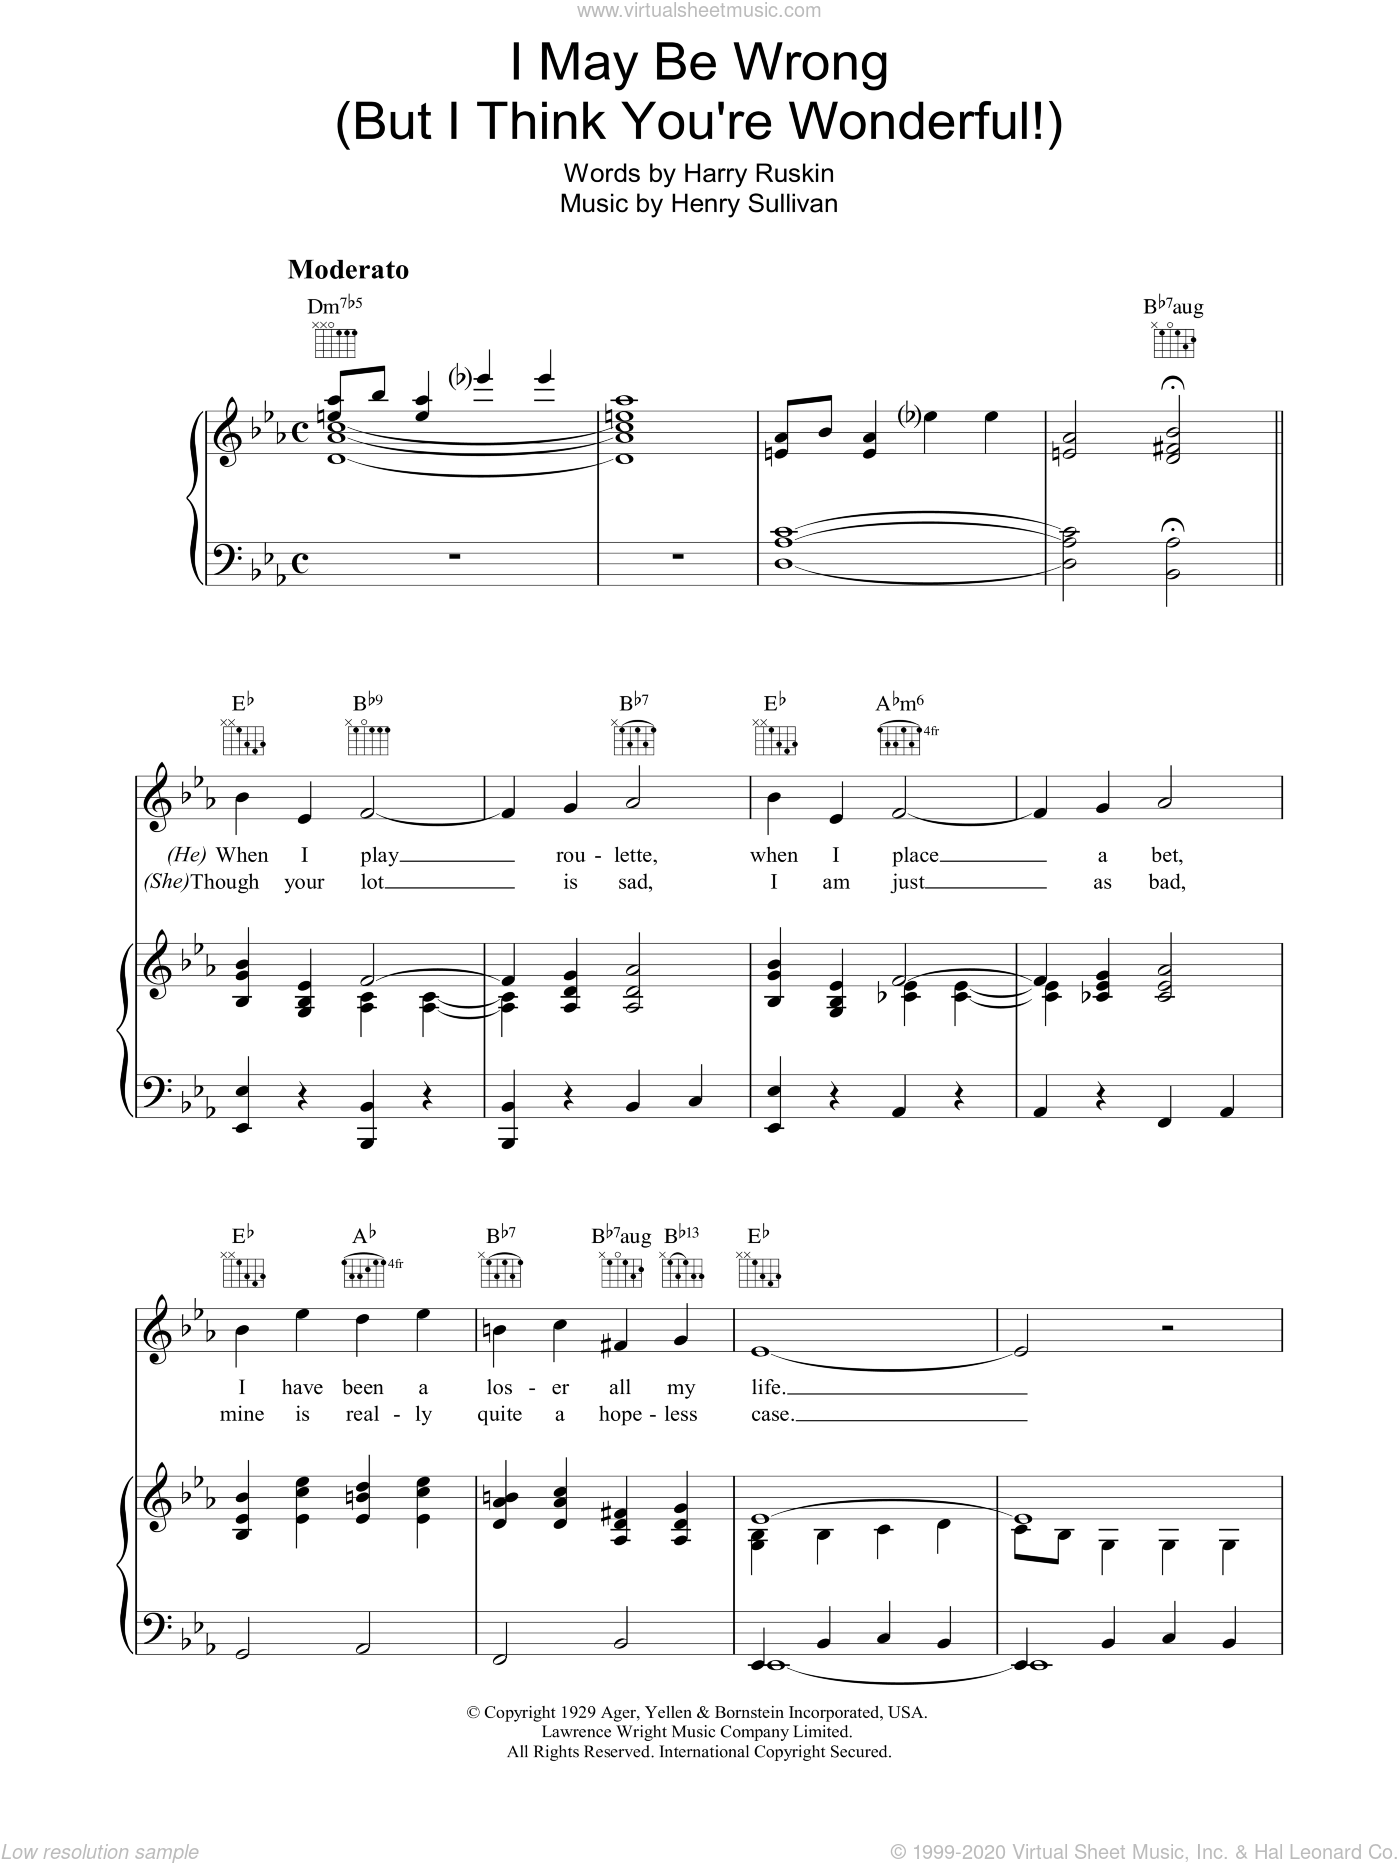 I May Be Wrong (But I Think You're Wonderful) sheet music for voice, piano or guitar by Harry Ruskin